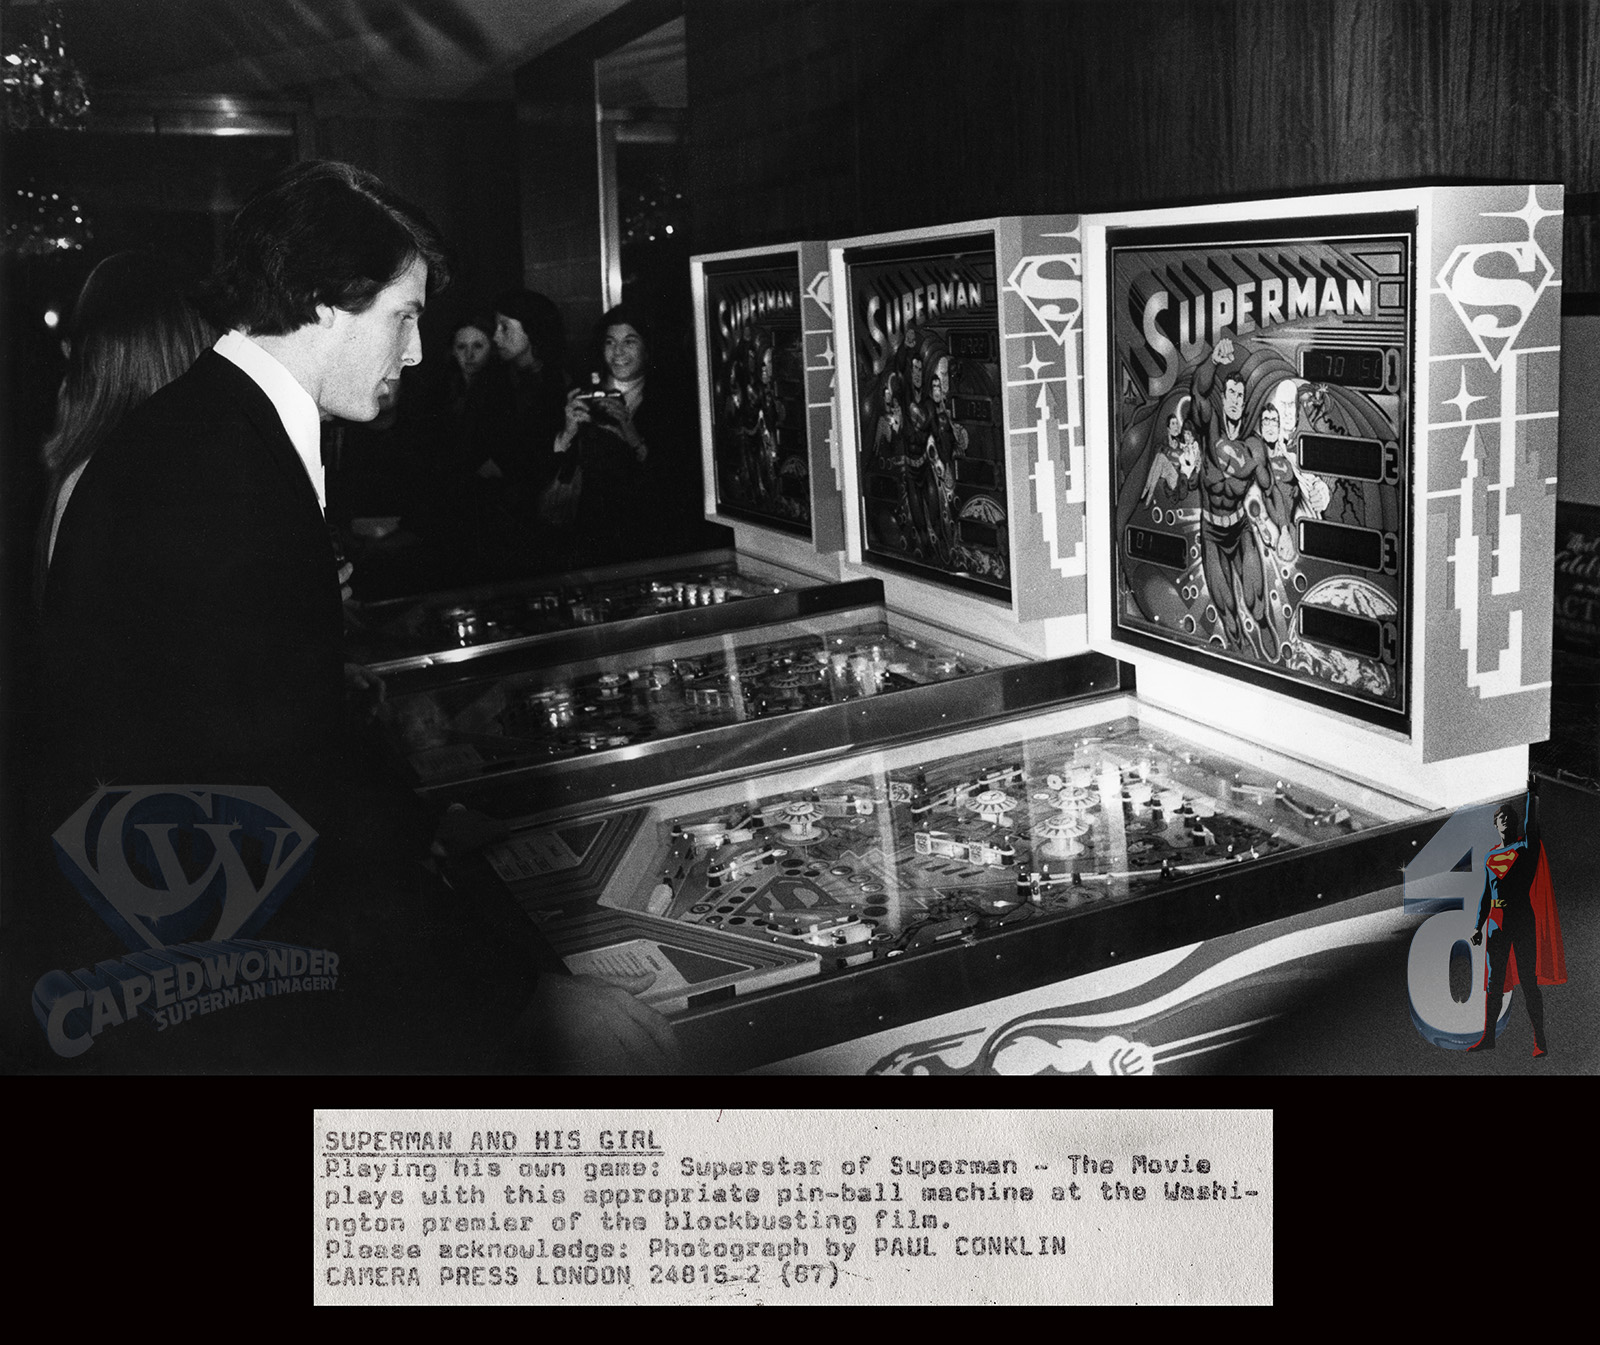 CW-STM-Reeve-pinball-DC-premiere-12-10-78